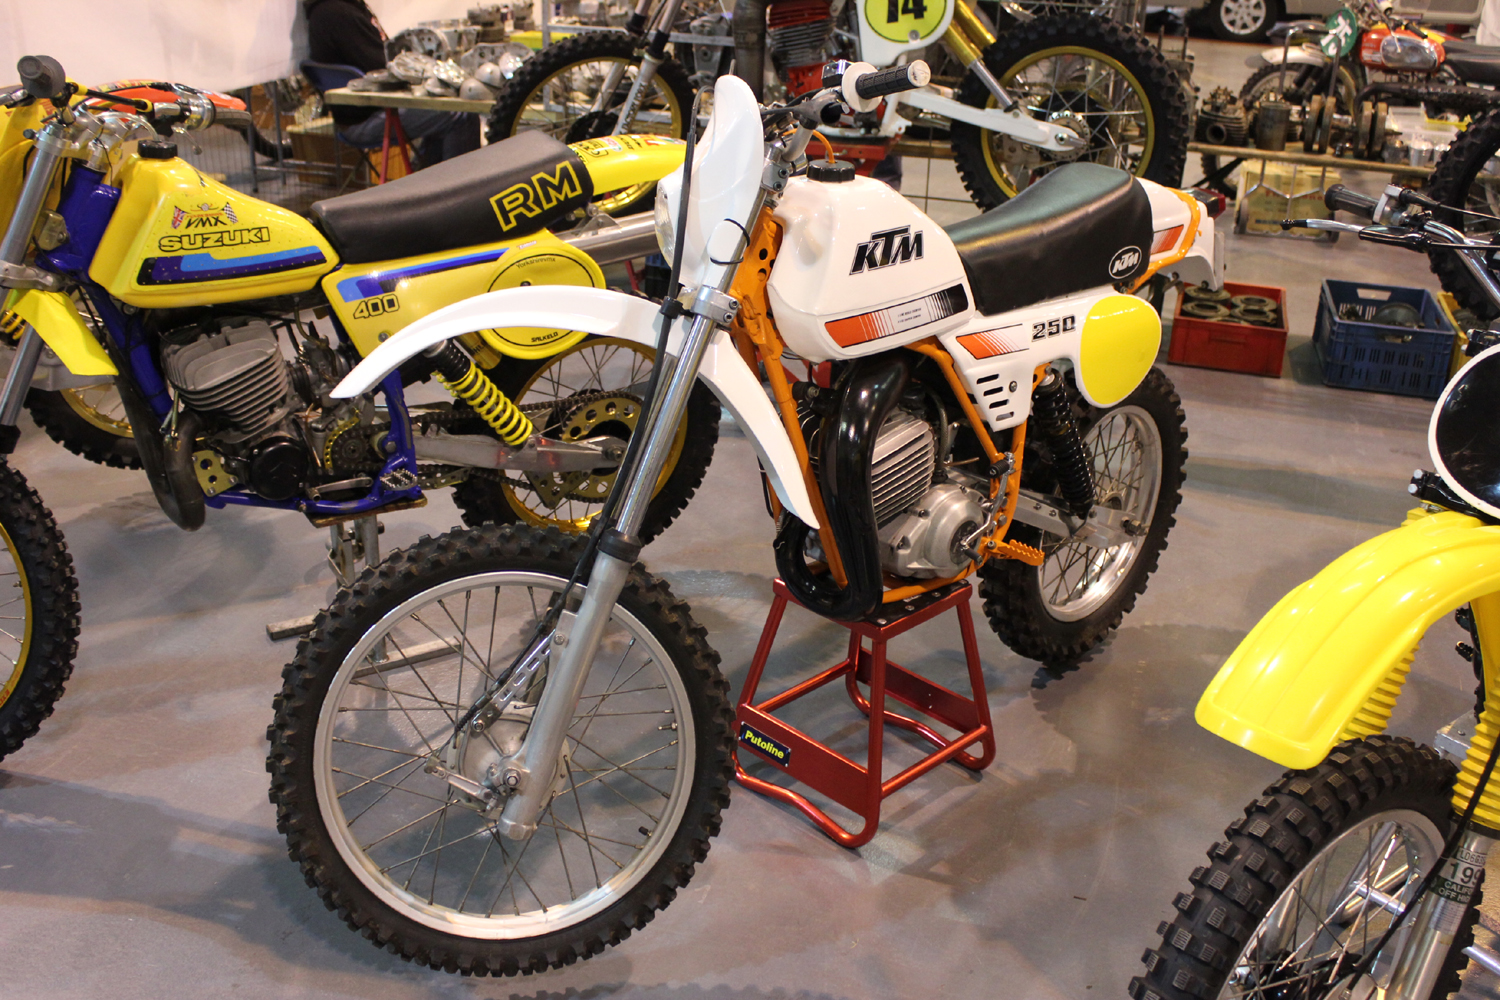 classicdirtbikerider.com-photo by Mr J-2015 Telford classic dirt bike show-KTM TWINSHOCK ENDURO